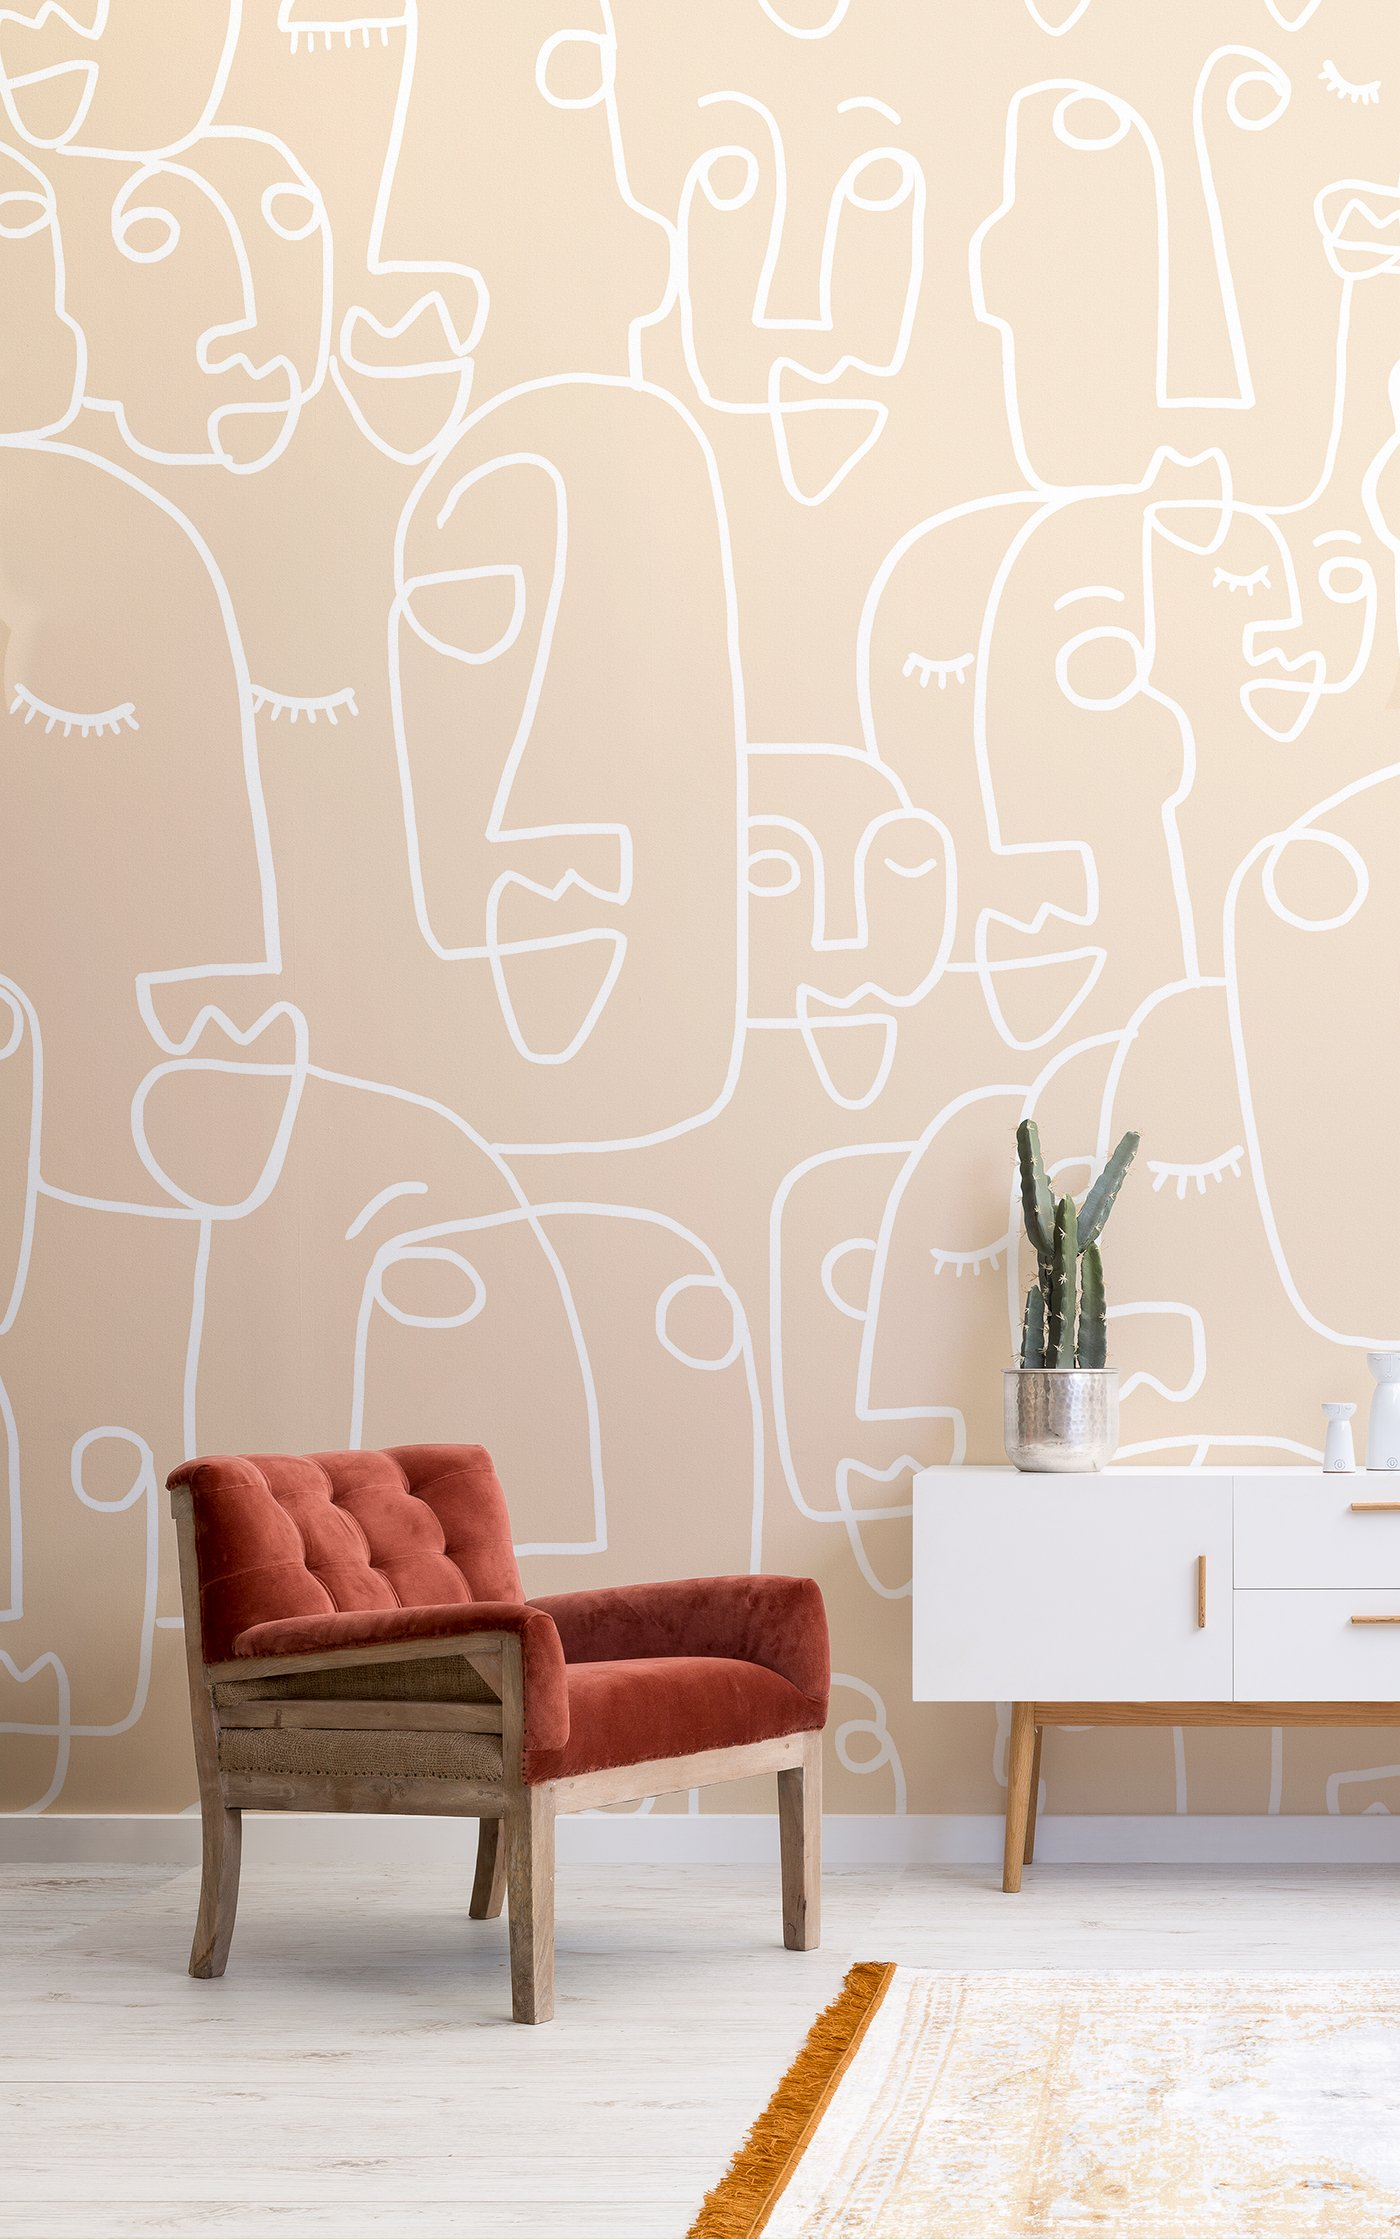 nude line drawing face wallpaper